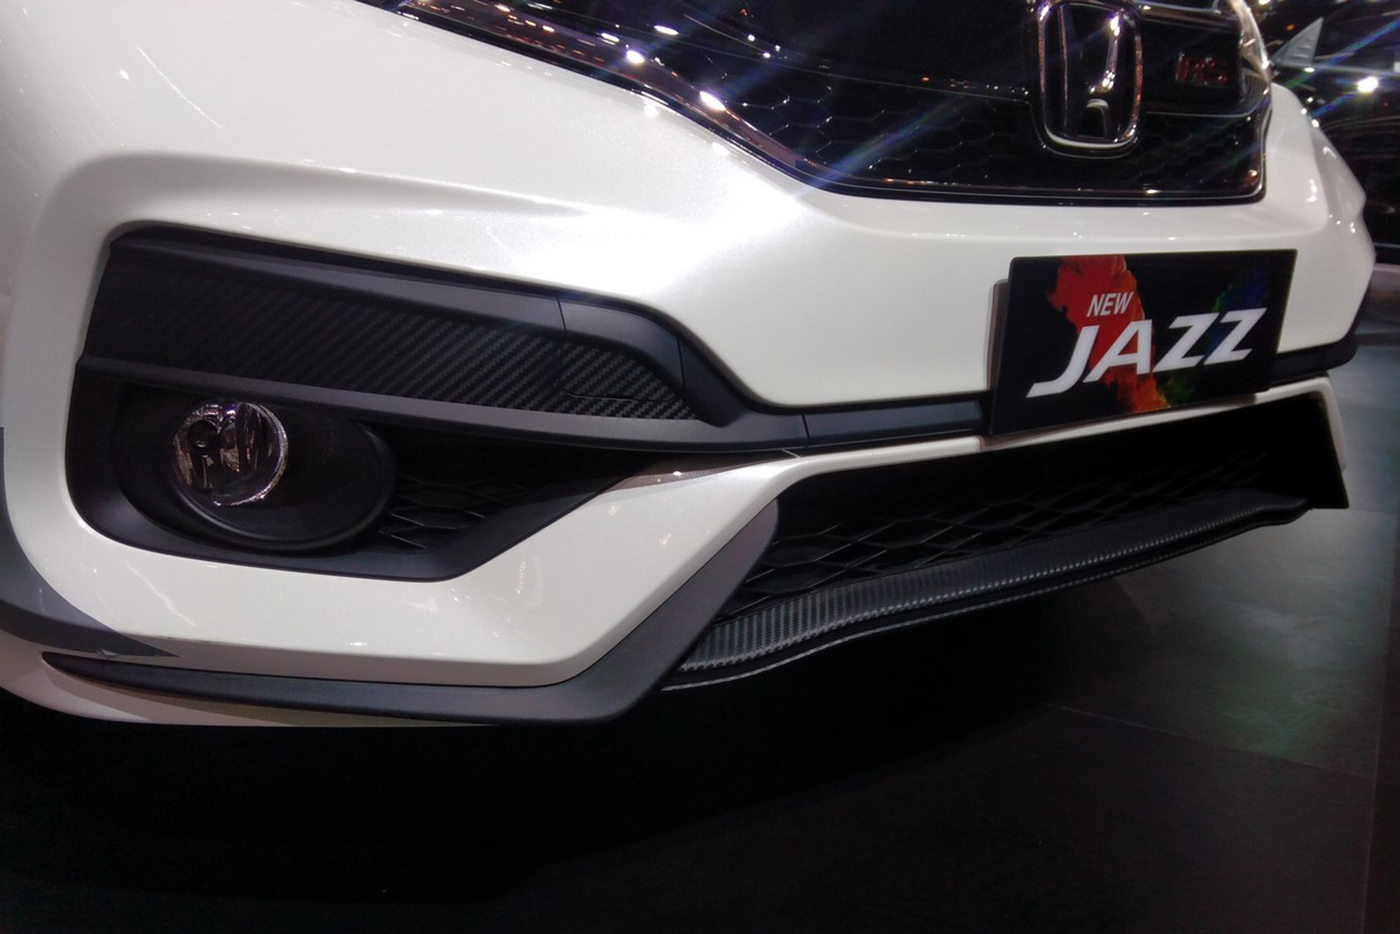 honda-jazz-rs-2017-7.jpg